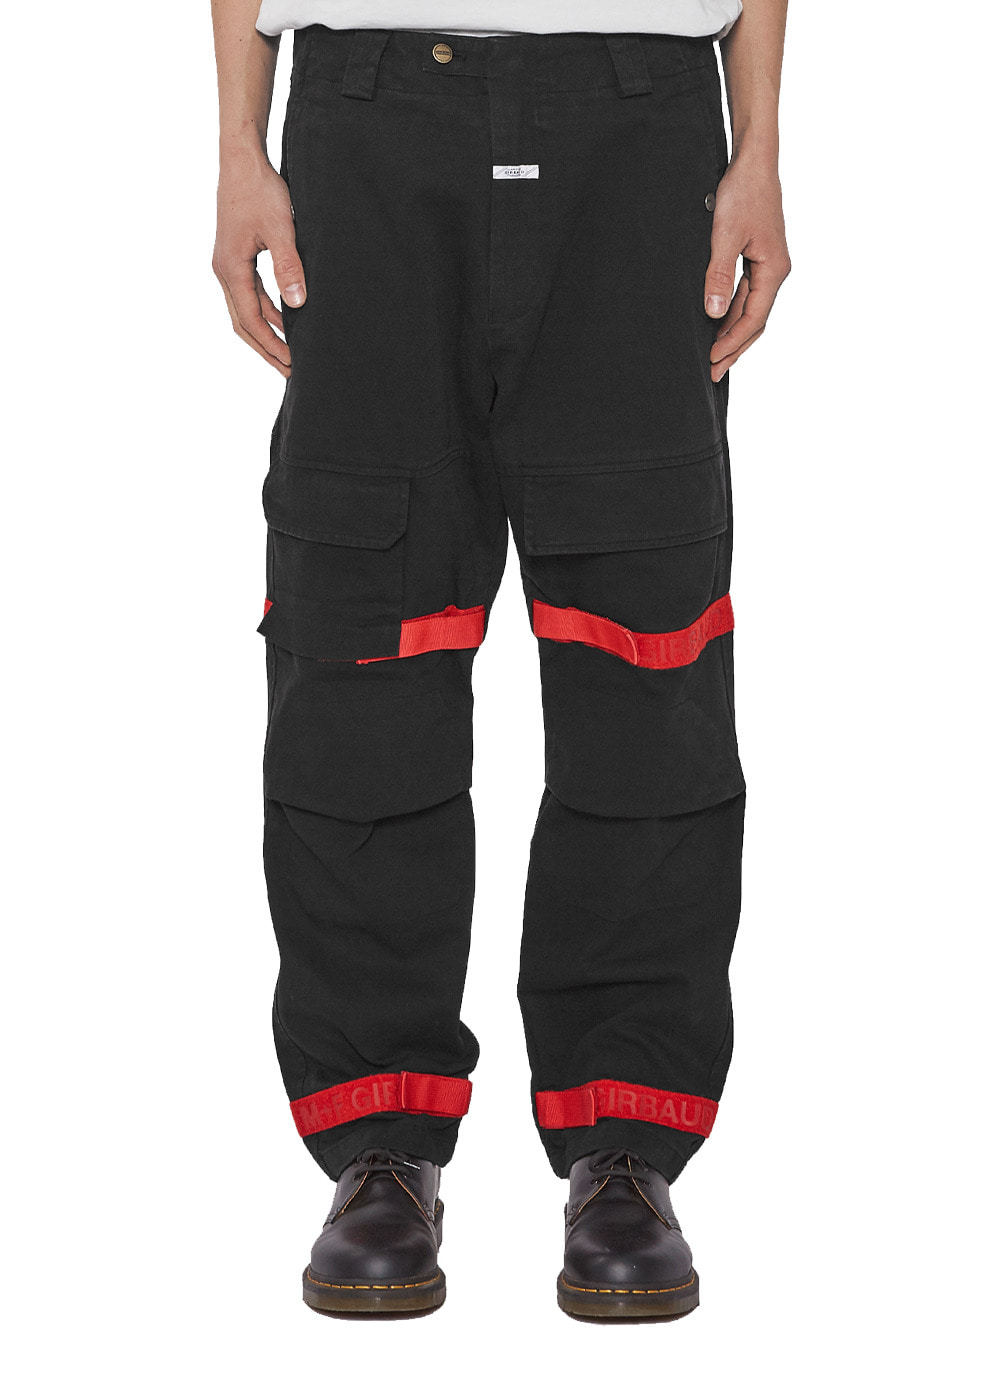 MARITHE SHUTTLE TAPE PANTS black